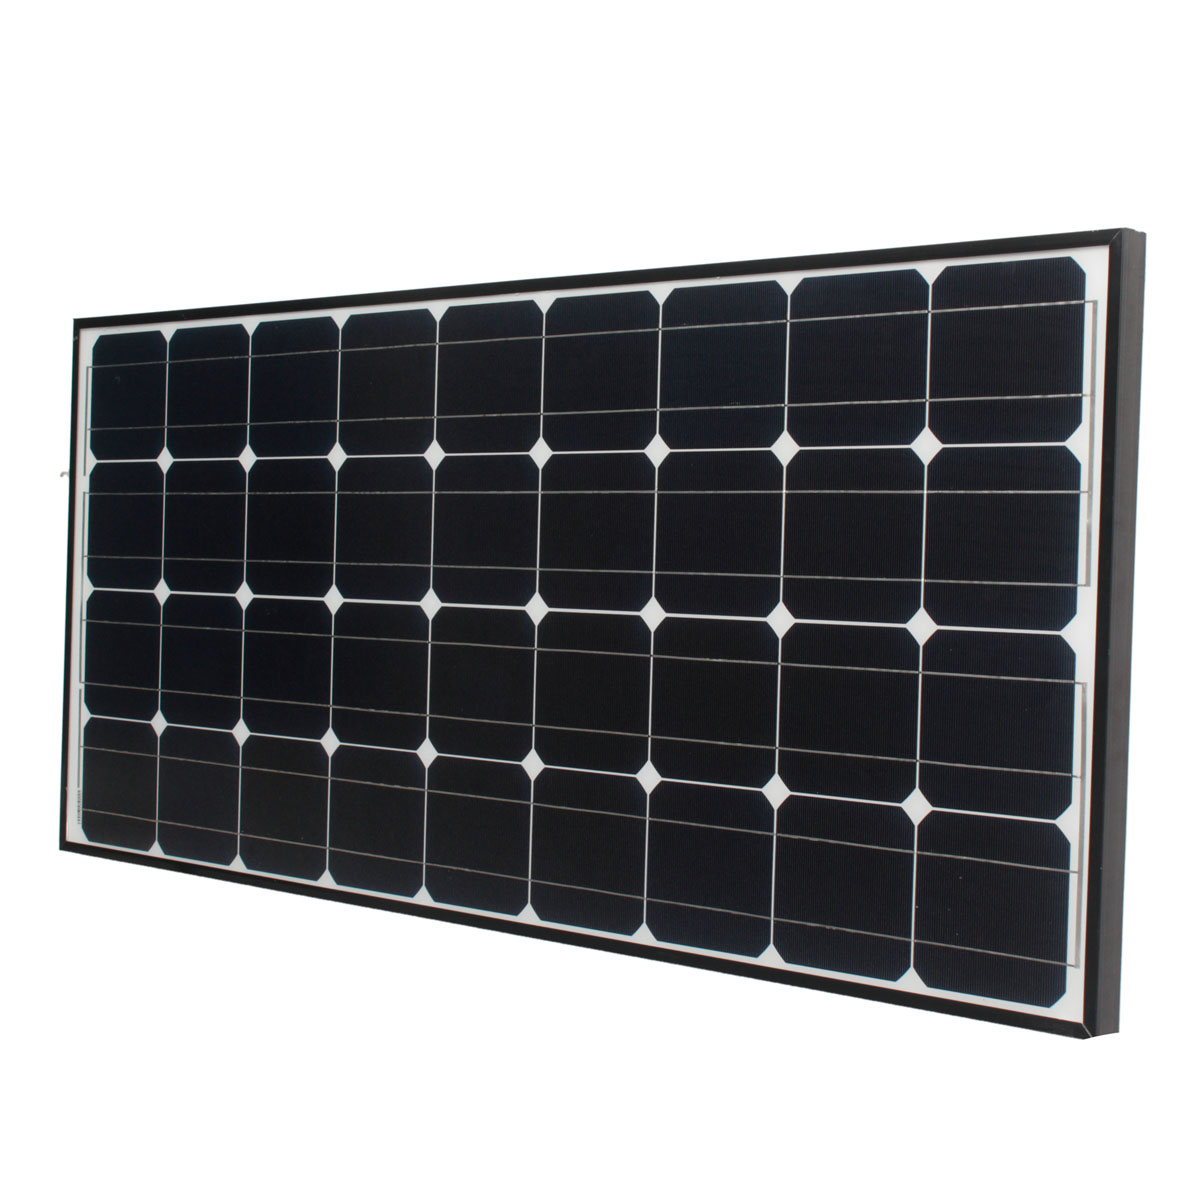 KINCO 30w 18v Monocrystalline Silicon Solar Panels High Conversion Efficiency DIy Solar Panel Battery With Silver/Black Frame sp 36 120w 12v semi flexible monocrystalline solar panel waterproof high conversion efficiency for rv boat car 1 5m cable